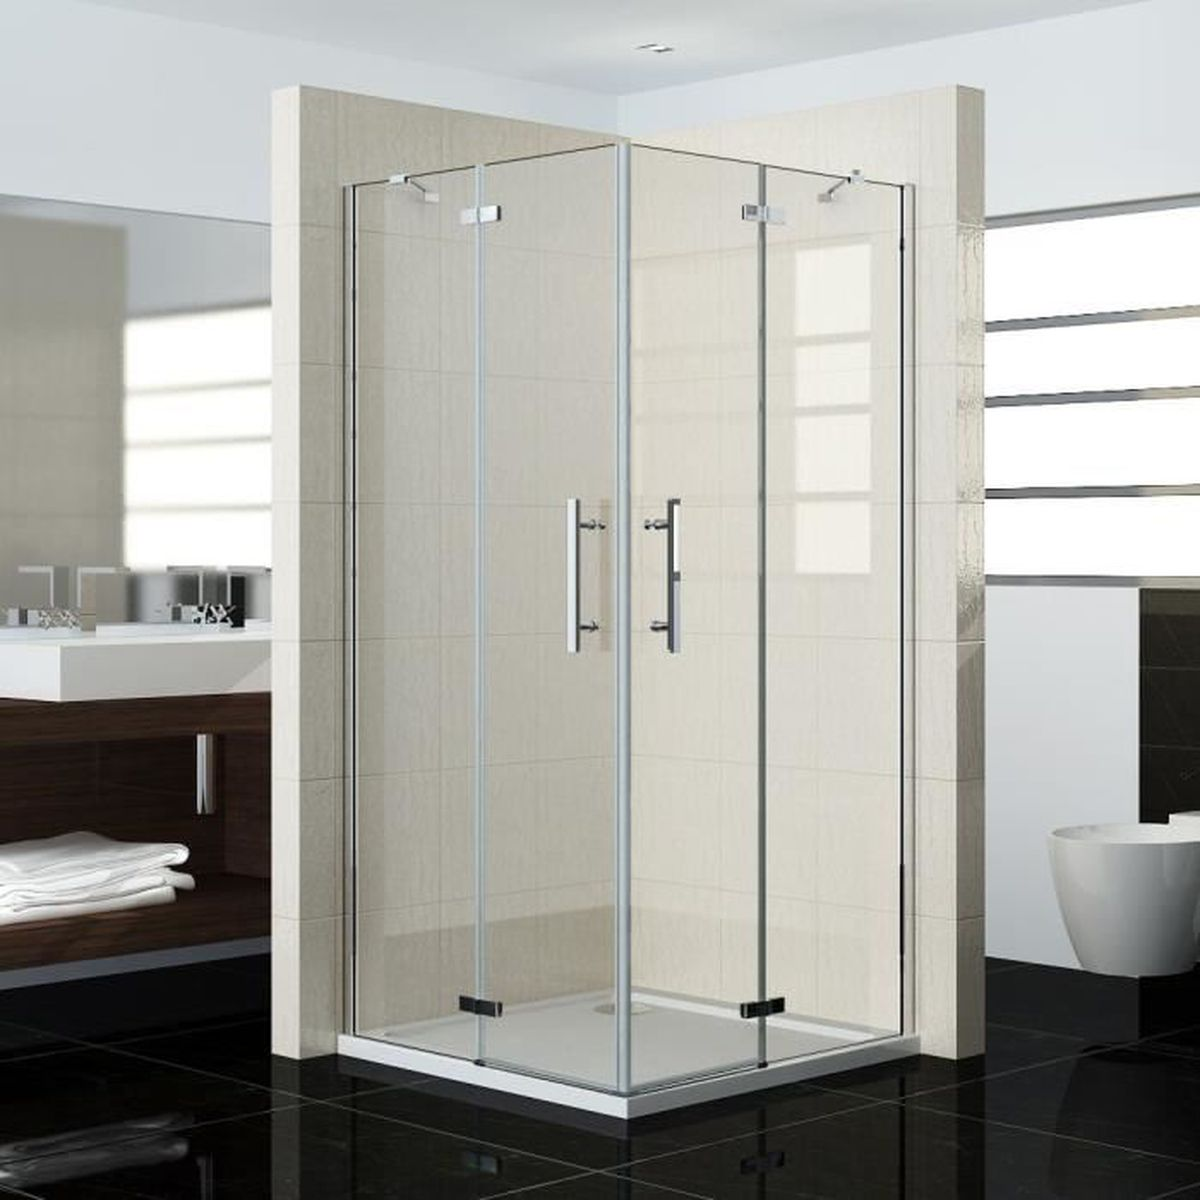 100 80 185cm shower door porte de douche r glable cabine de douche anticalcaire achat. Black Bedroom Furniture Sets. Home Design Ideas